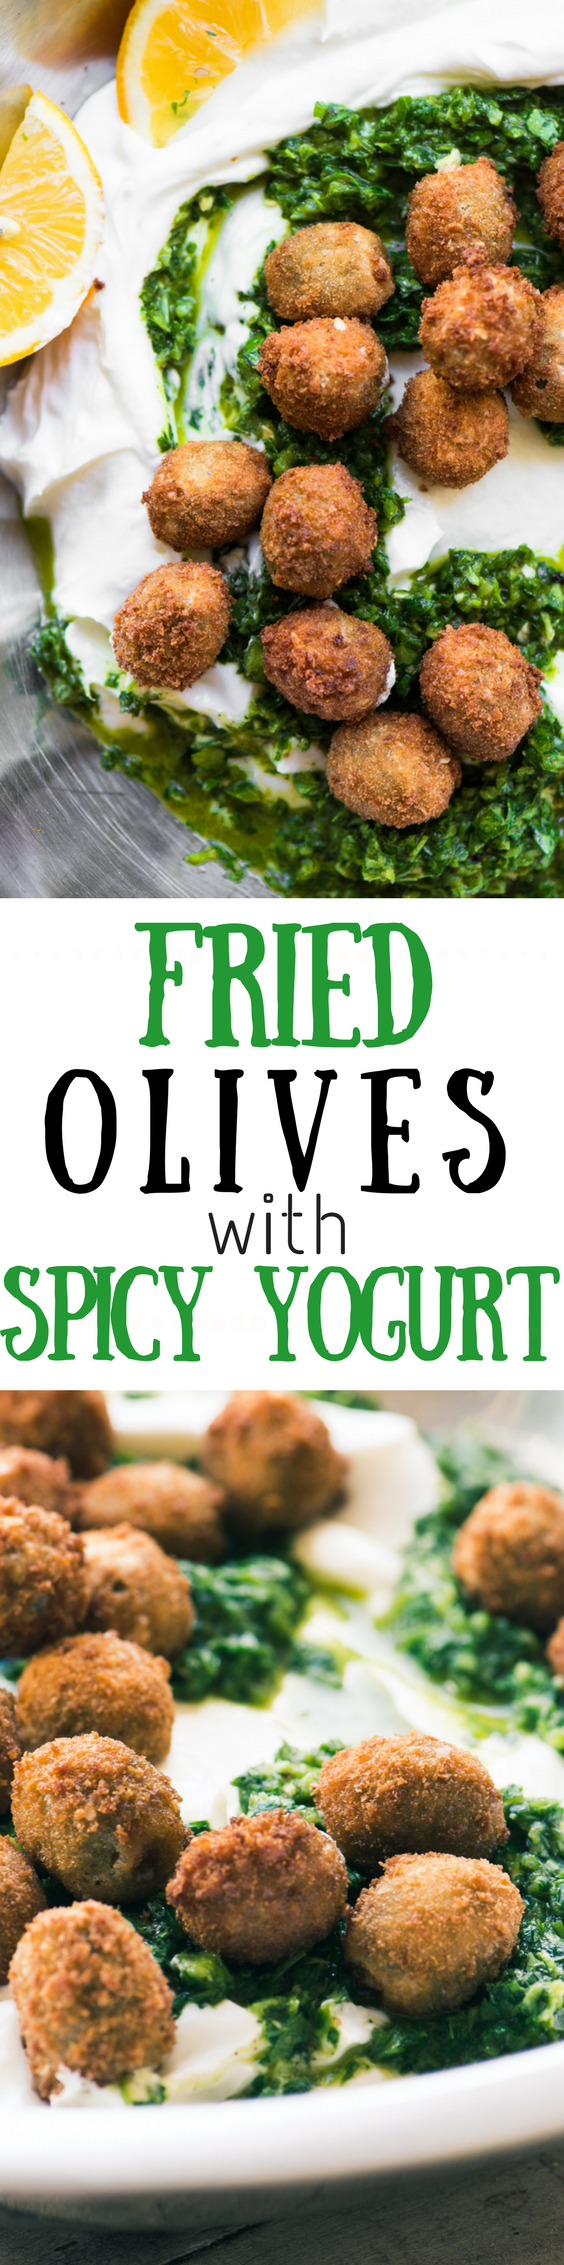 Fried Olives with Spicy Yogurt ~ are you ready for a new taste sensation? The olives are crispy on the outside, warm and juicy inside, the yogurt is cool and creamy, and the herb sauce is zesty. It's a party in the mouth and you're invited! #appetizer #olives #fingerfood #Gameday #partyfood #easyappetizers #ottolenghi #yotamottolenghi #friedolives